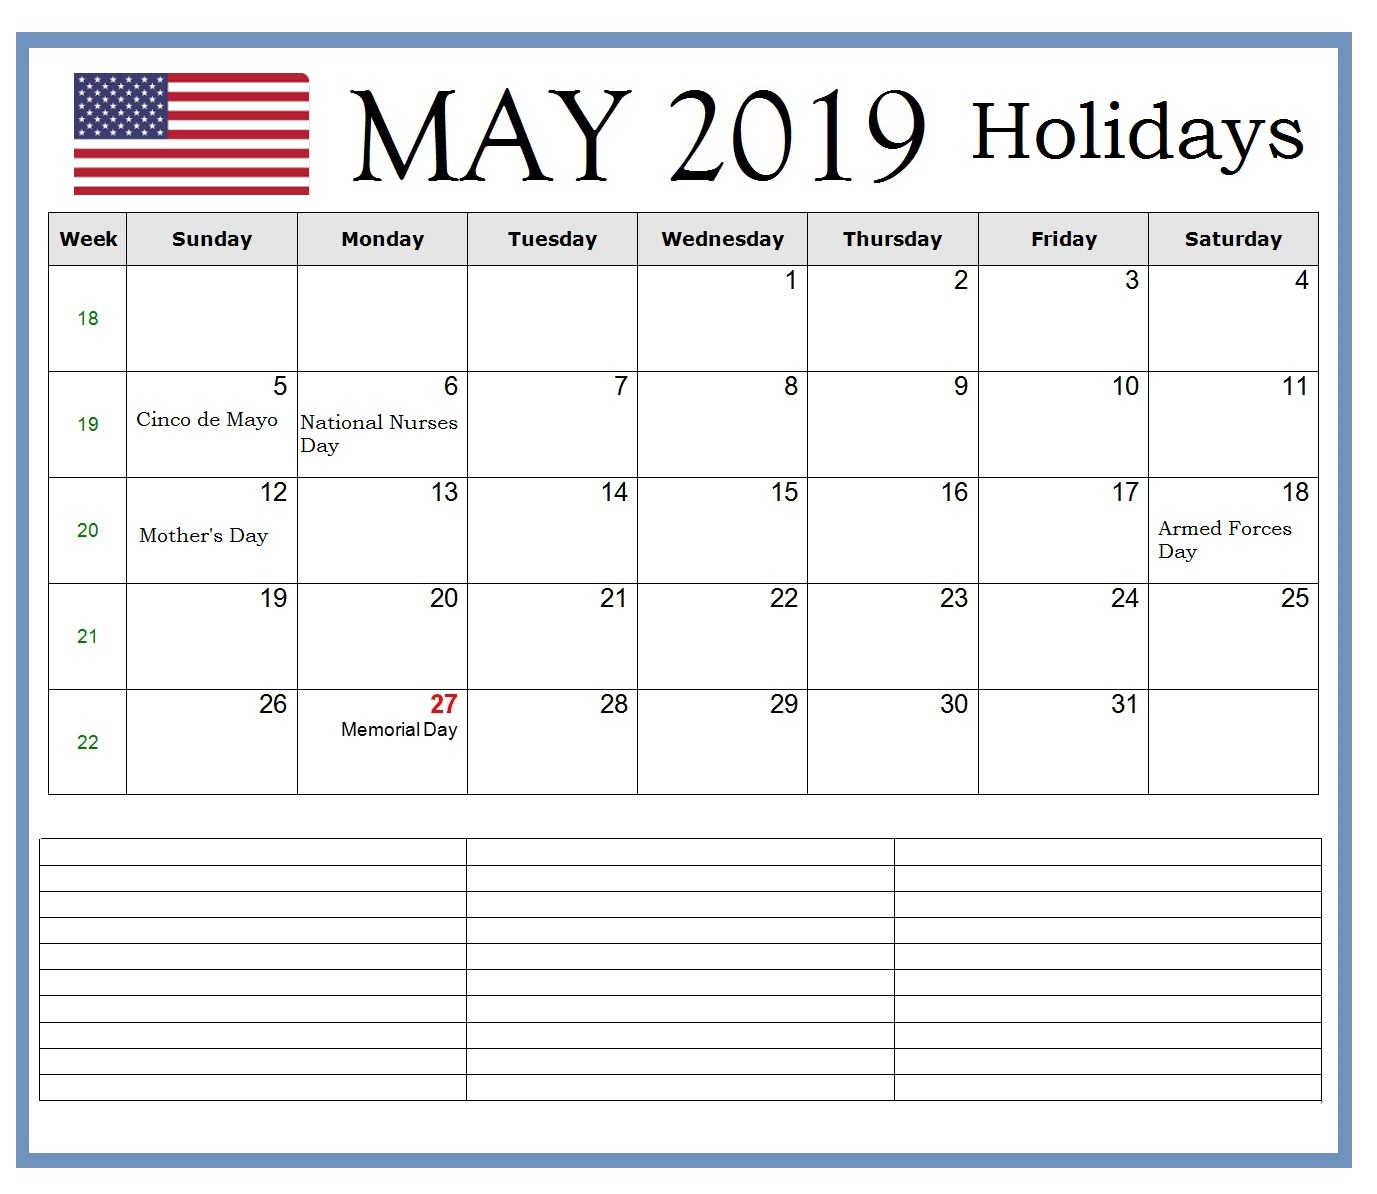 US May 2019 Bank Holidays Calendar